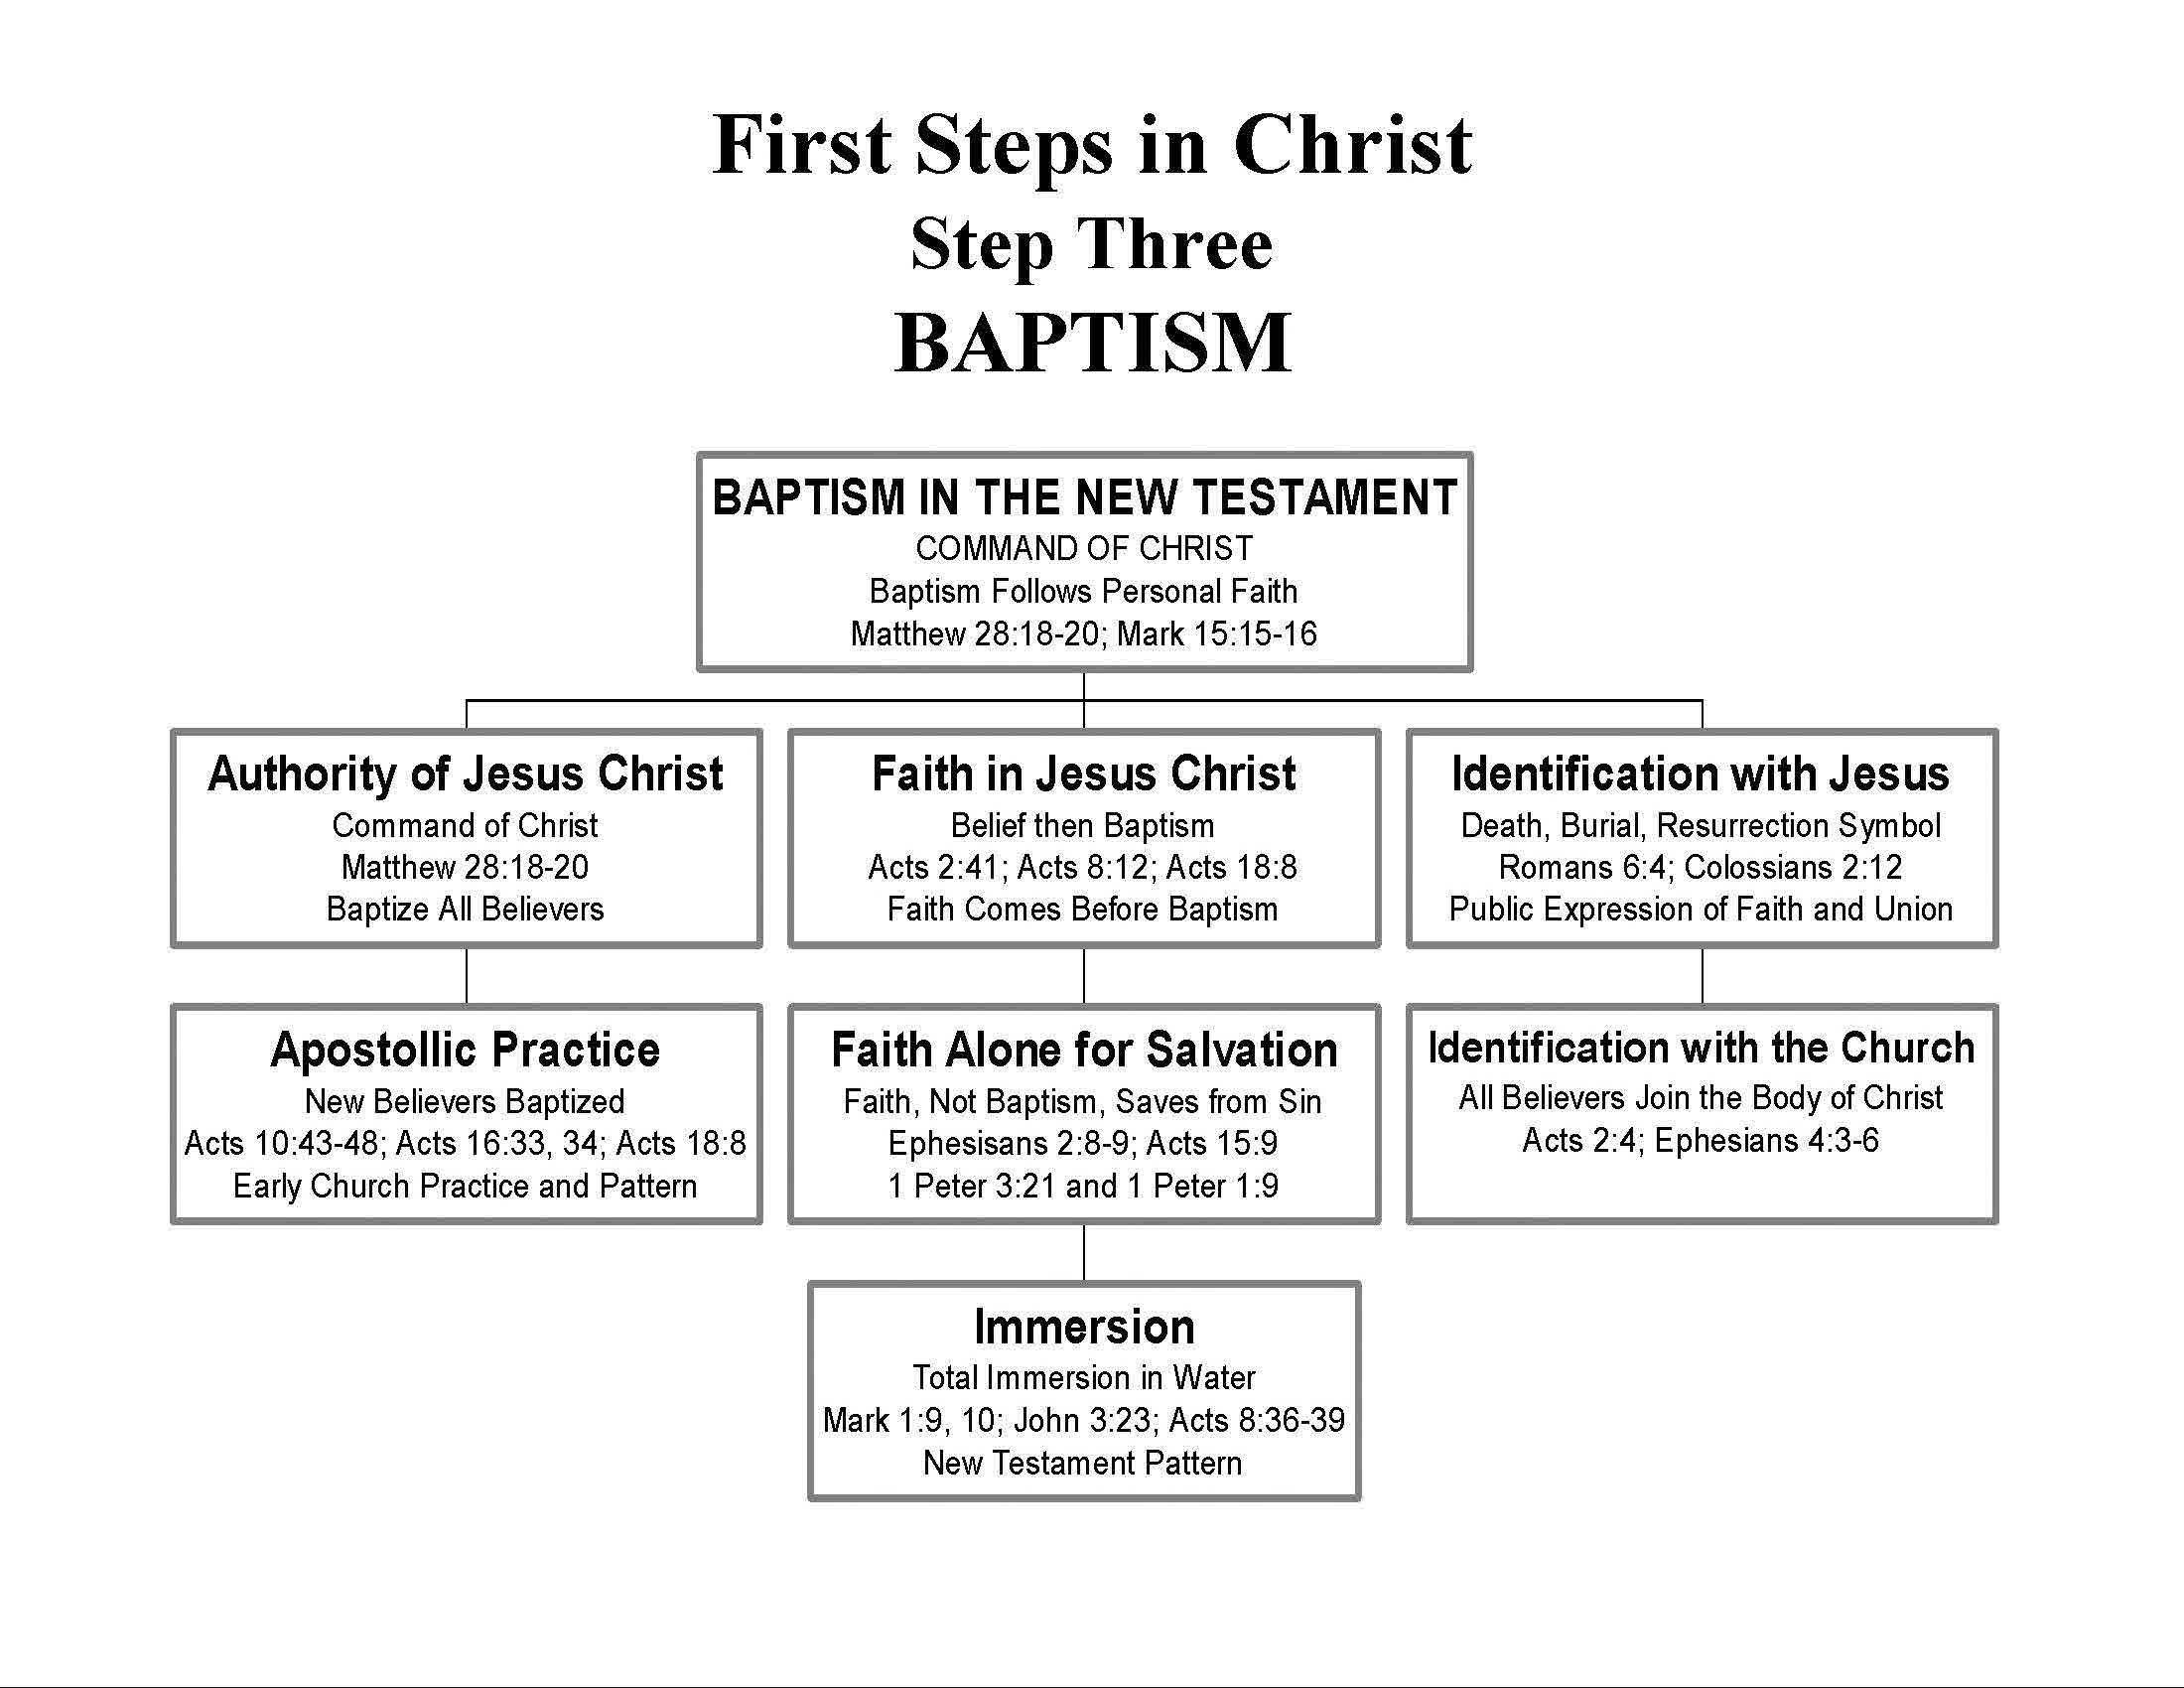 First steps in christ step three baptism first steps in christstep threebaptism biocorpaavc